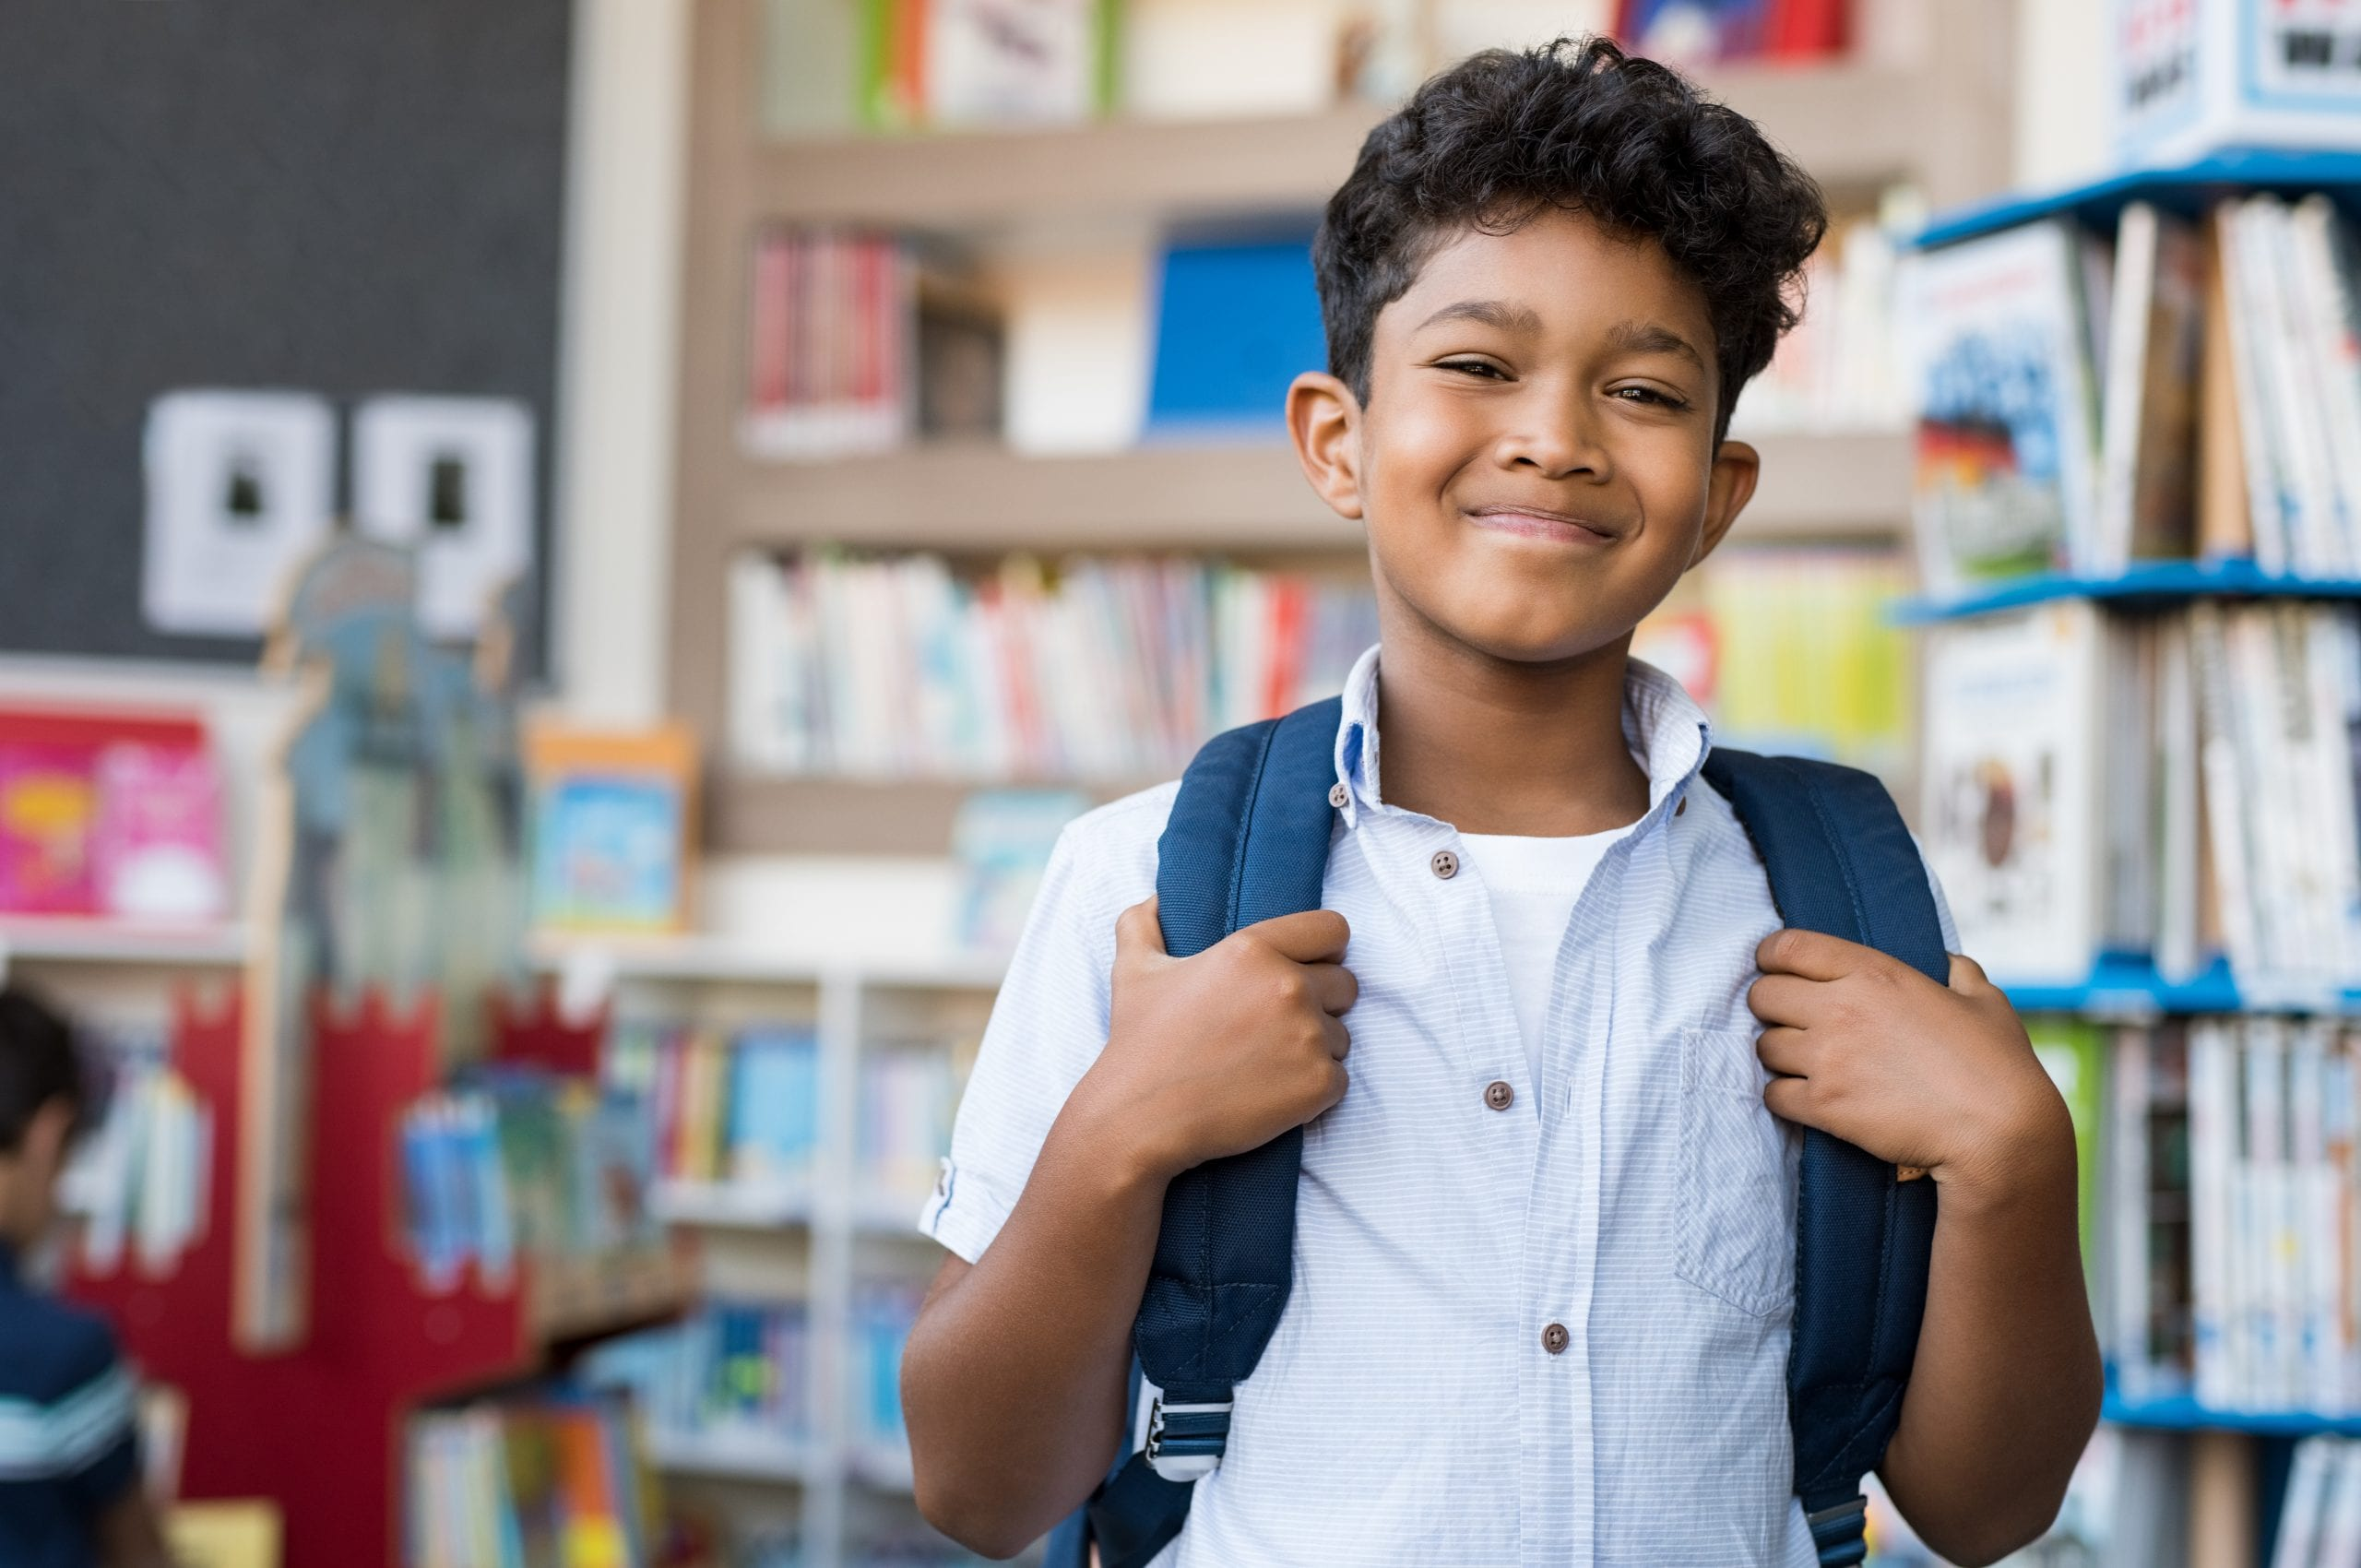 Young hispanic boy smiling with backpack on